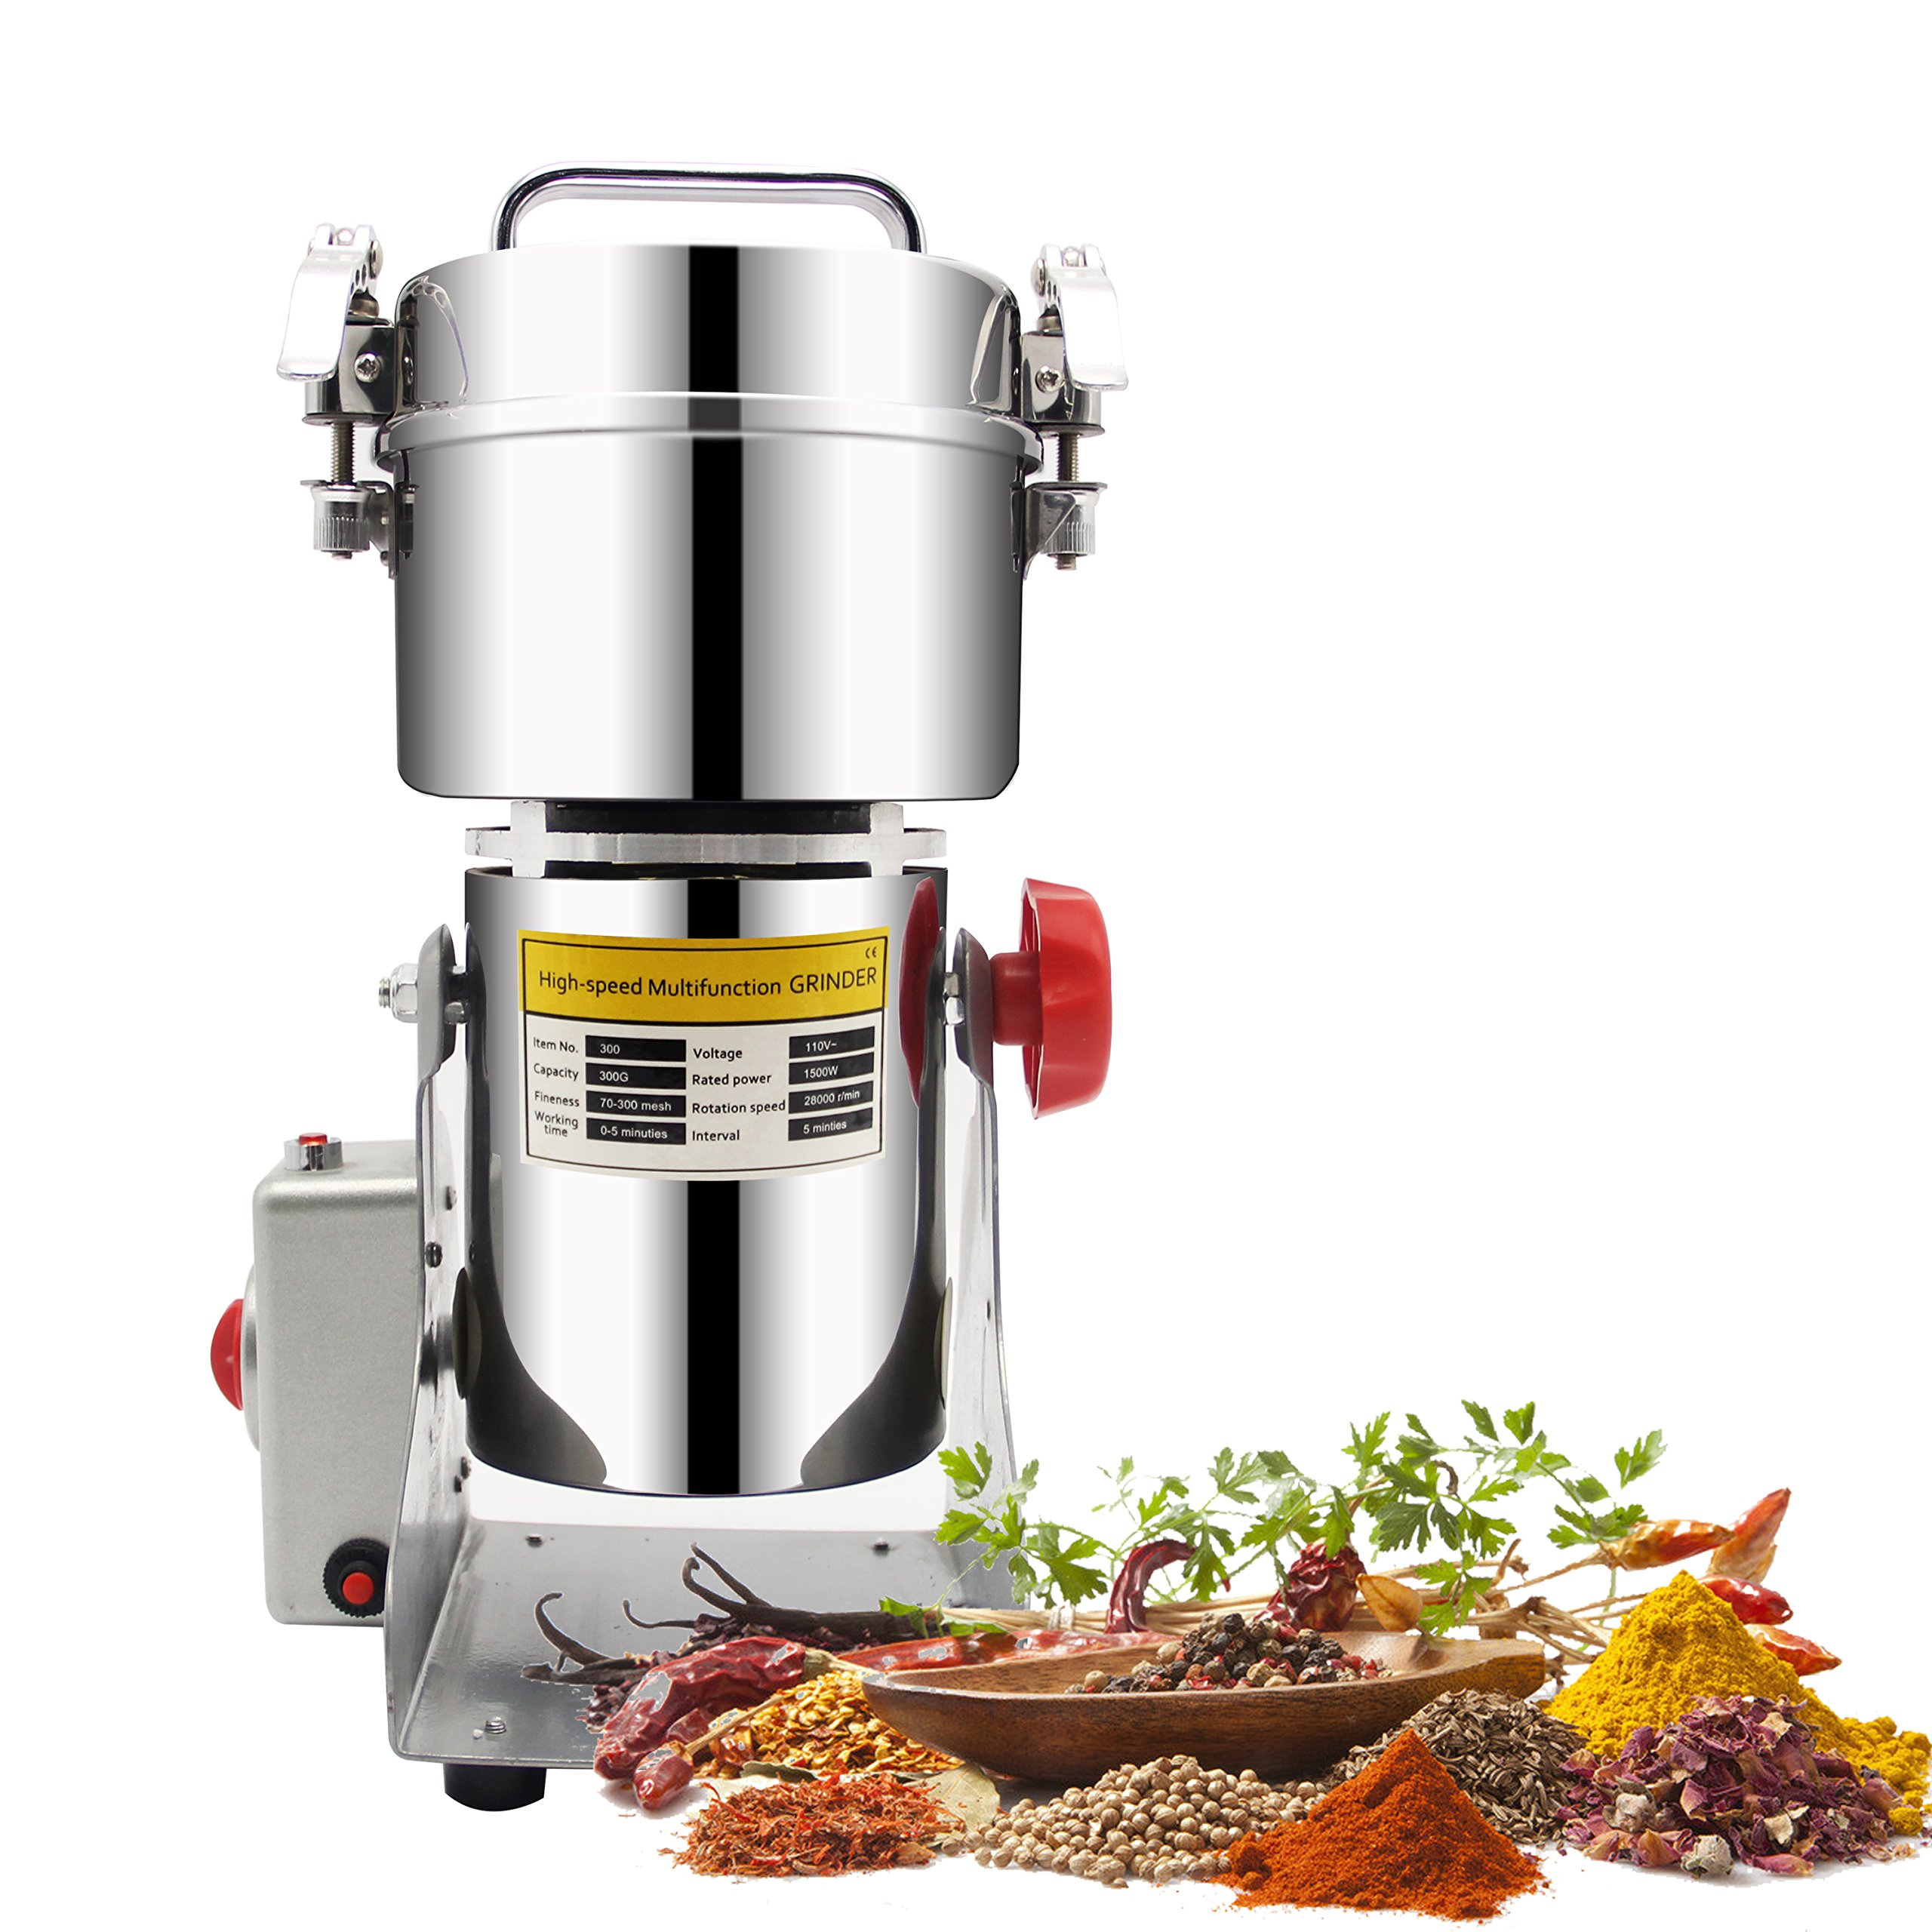 CGOLDENWALL 300g Stainless Steel Electric High-speed Grain Grinder Mill Family Medicial Powder Machine Commercial Cereals Grain Mill Herb Grinder Pulverizer Gift for mom, wife by CGOLDENWALL